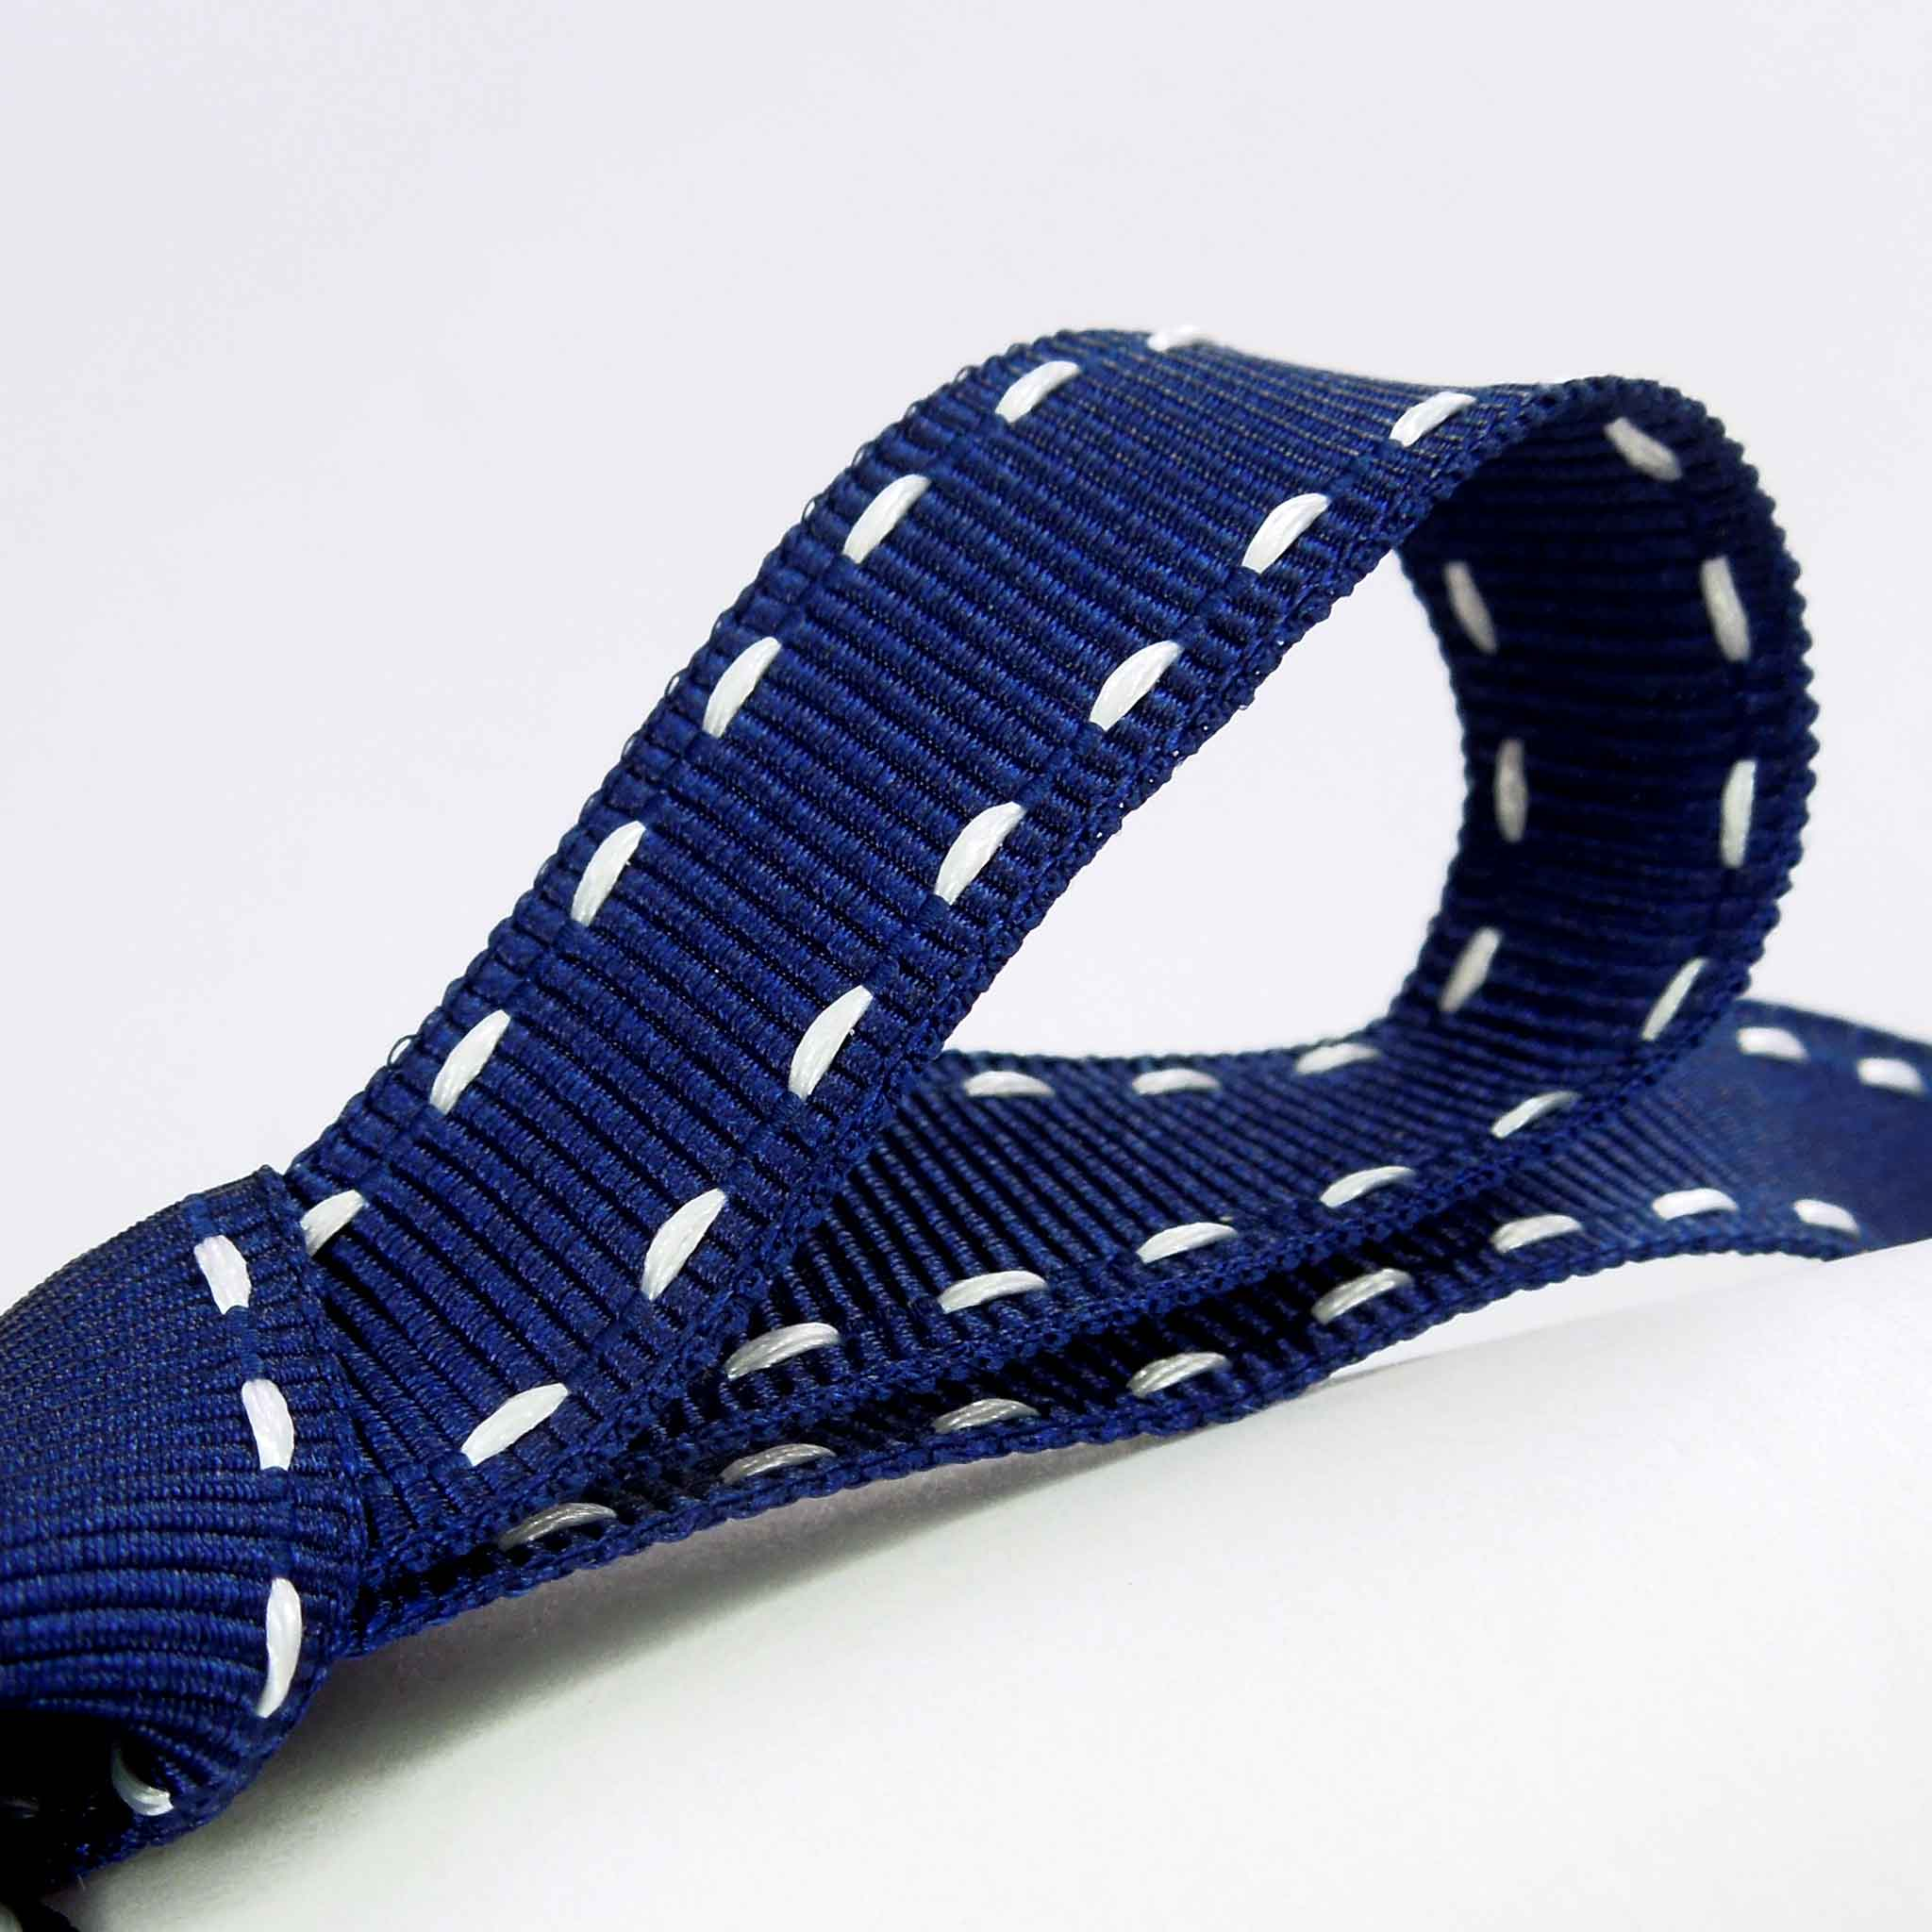 15 mm Stitched Grosgrain Navy Blue and White Ribbon